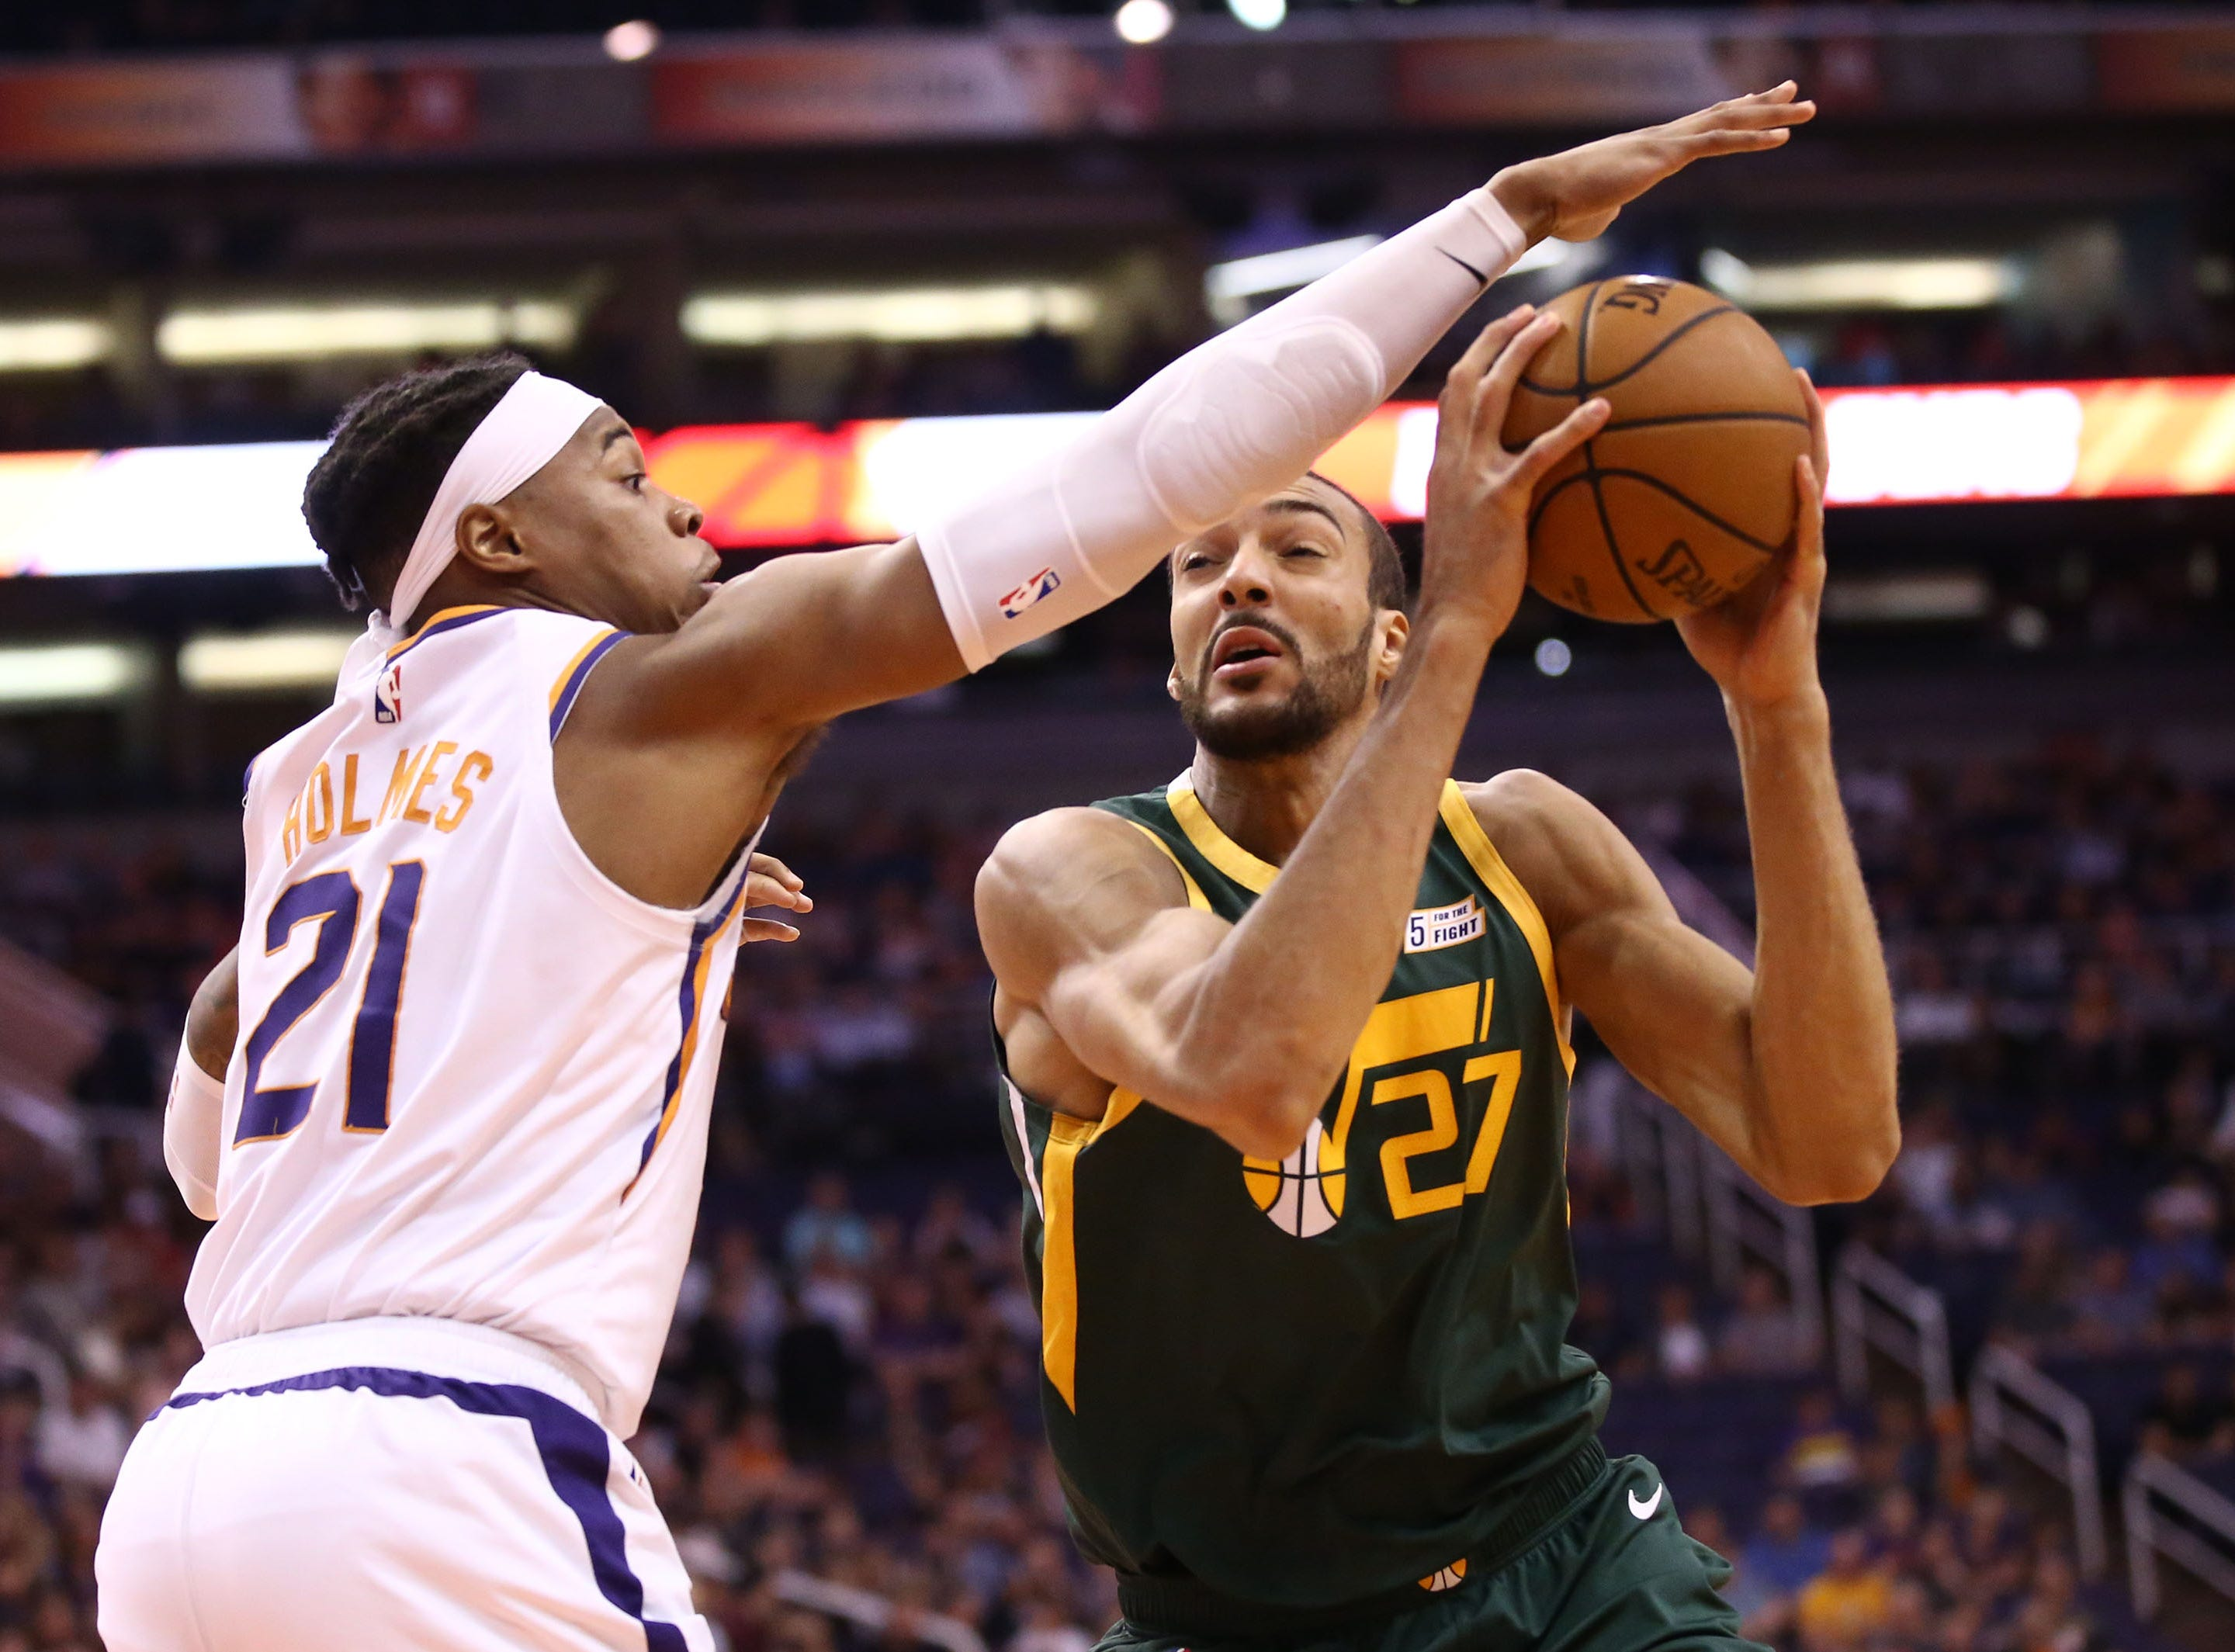 Phoenix Suns forward Richaun Holmes (21) guards Utah Jazz center Rudy Gobert (27) in the first half on Apr. 3, 2019 at Talking Stick Resort Arena in Phoenix, Ariz.